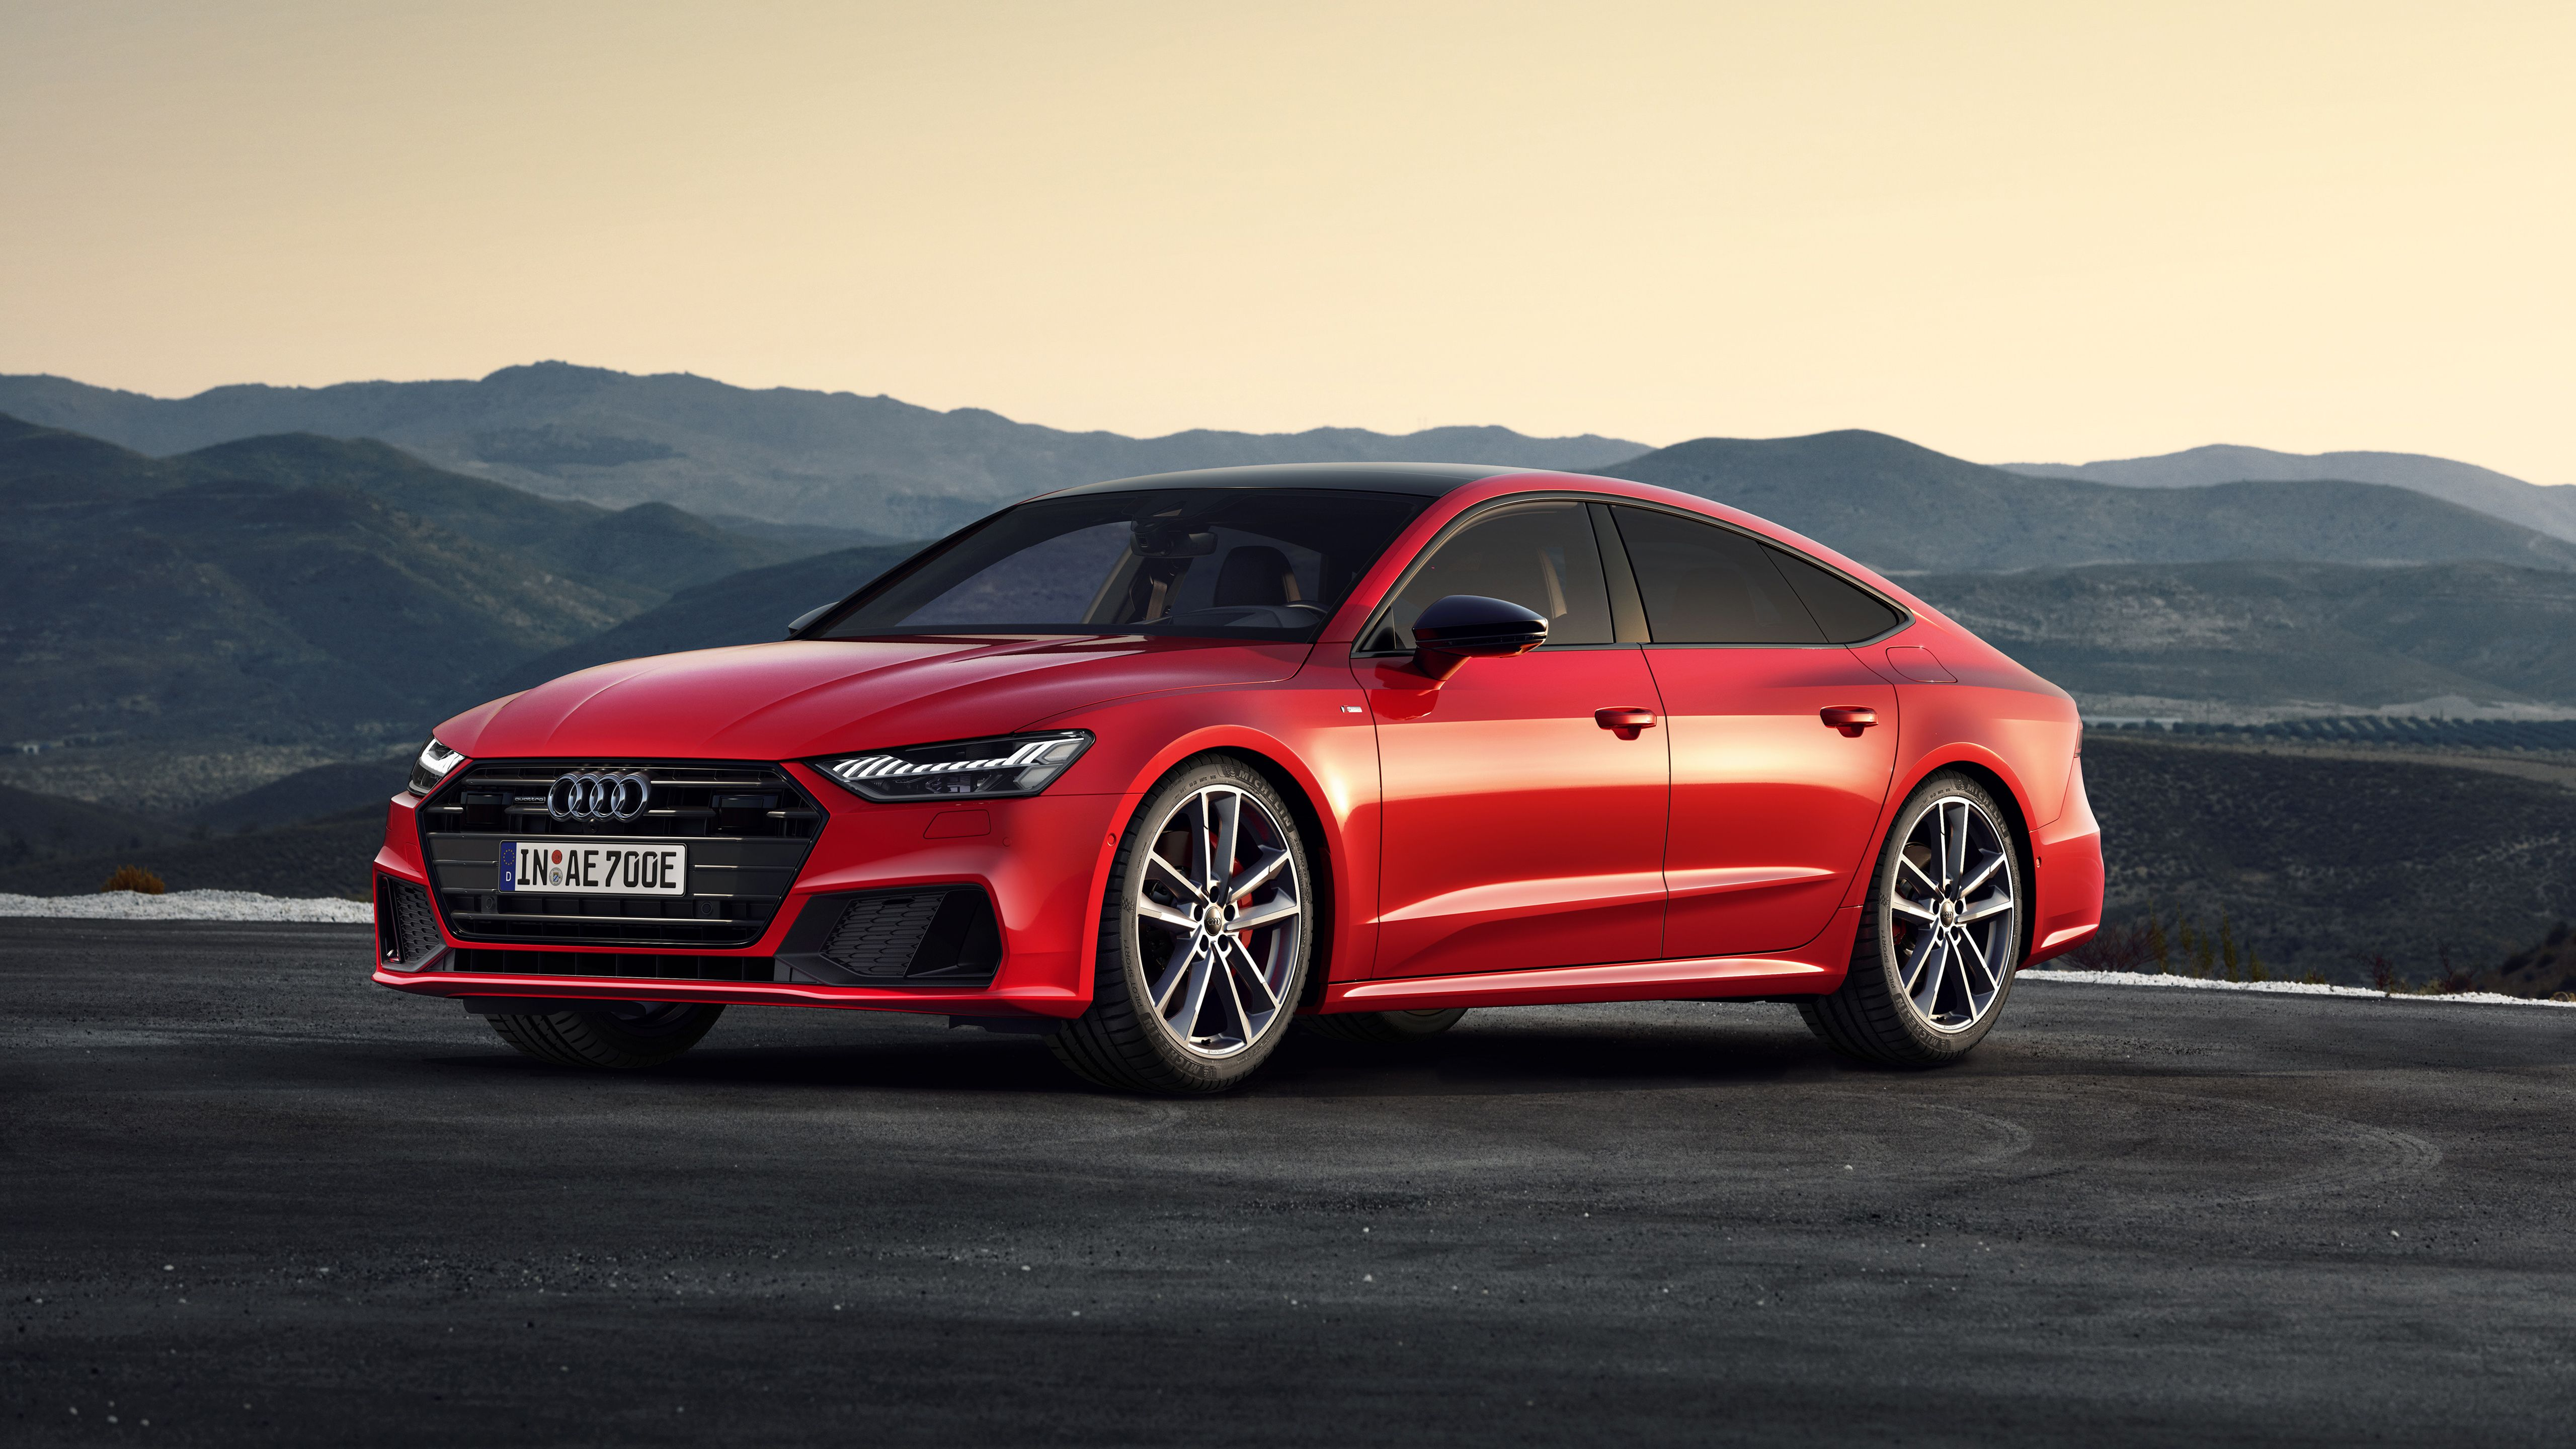 Audi A7 4k Wallpapers Top Free Audi A7 4k Backgrounds Wallpaperaccess